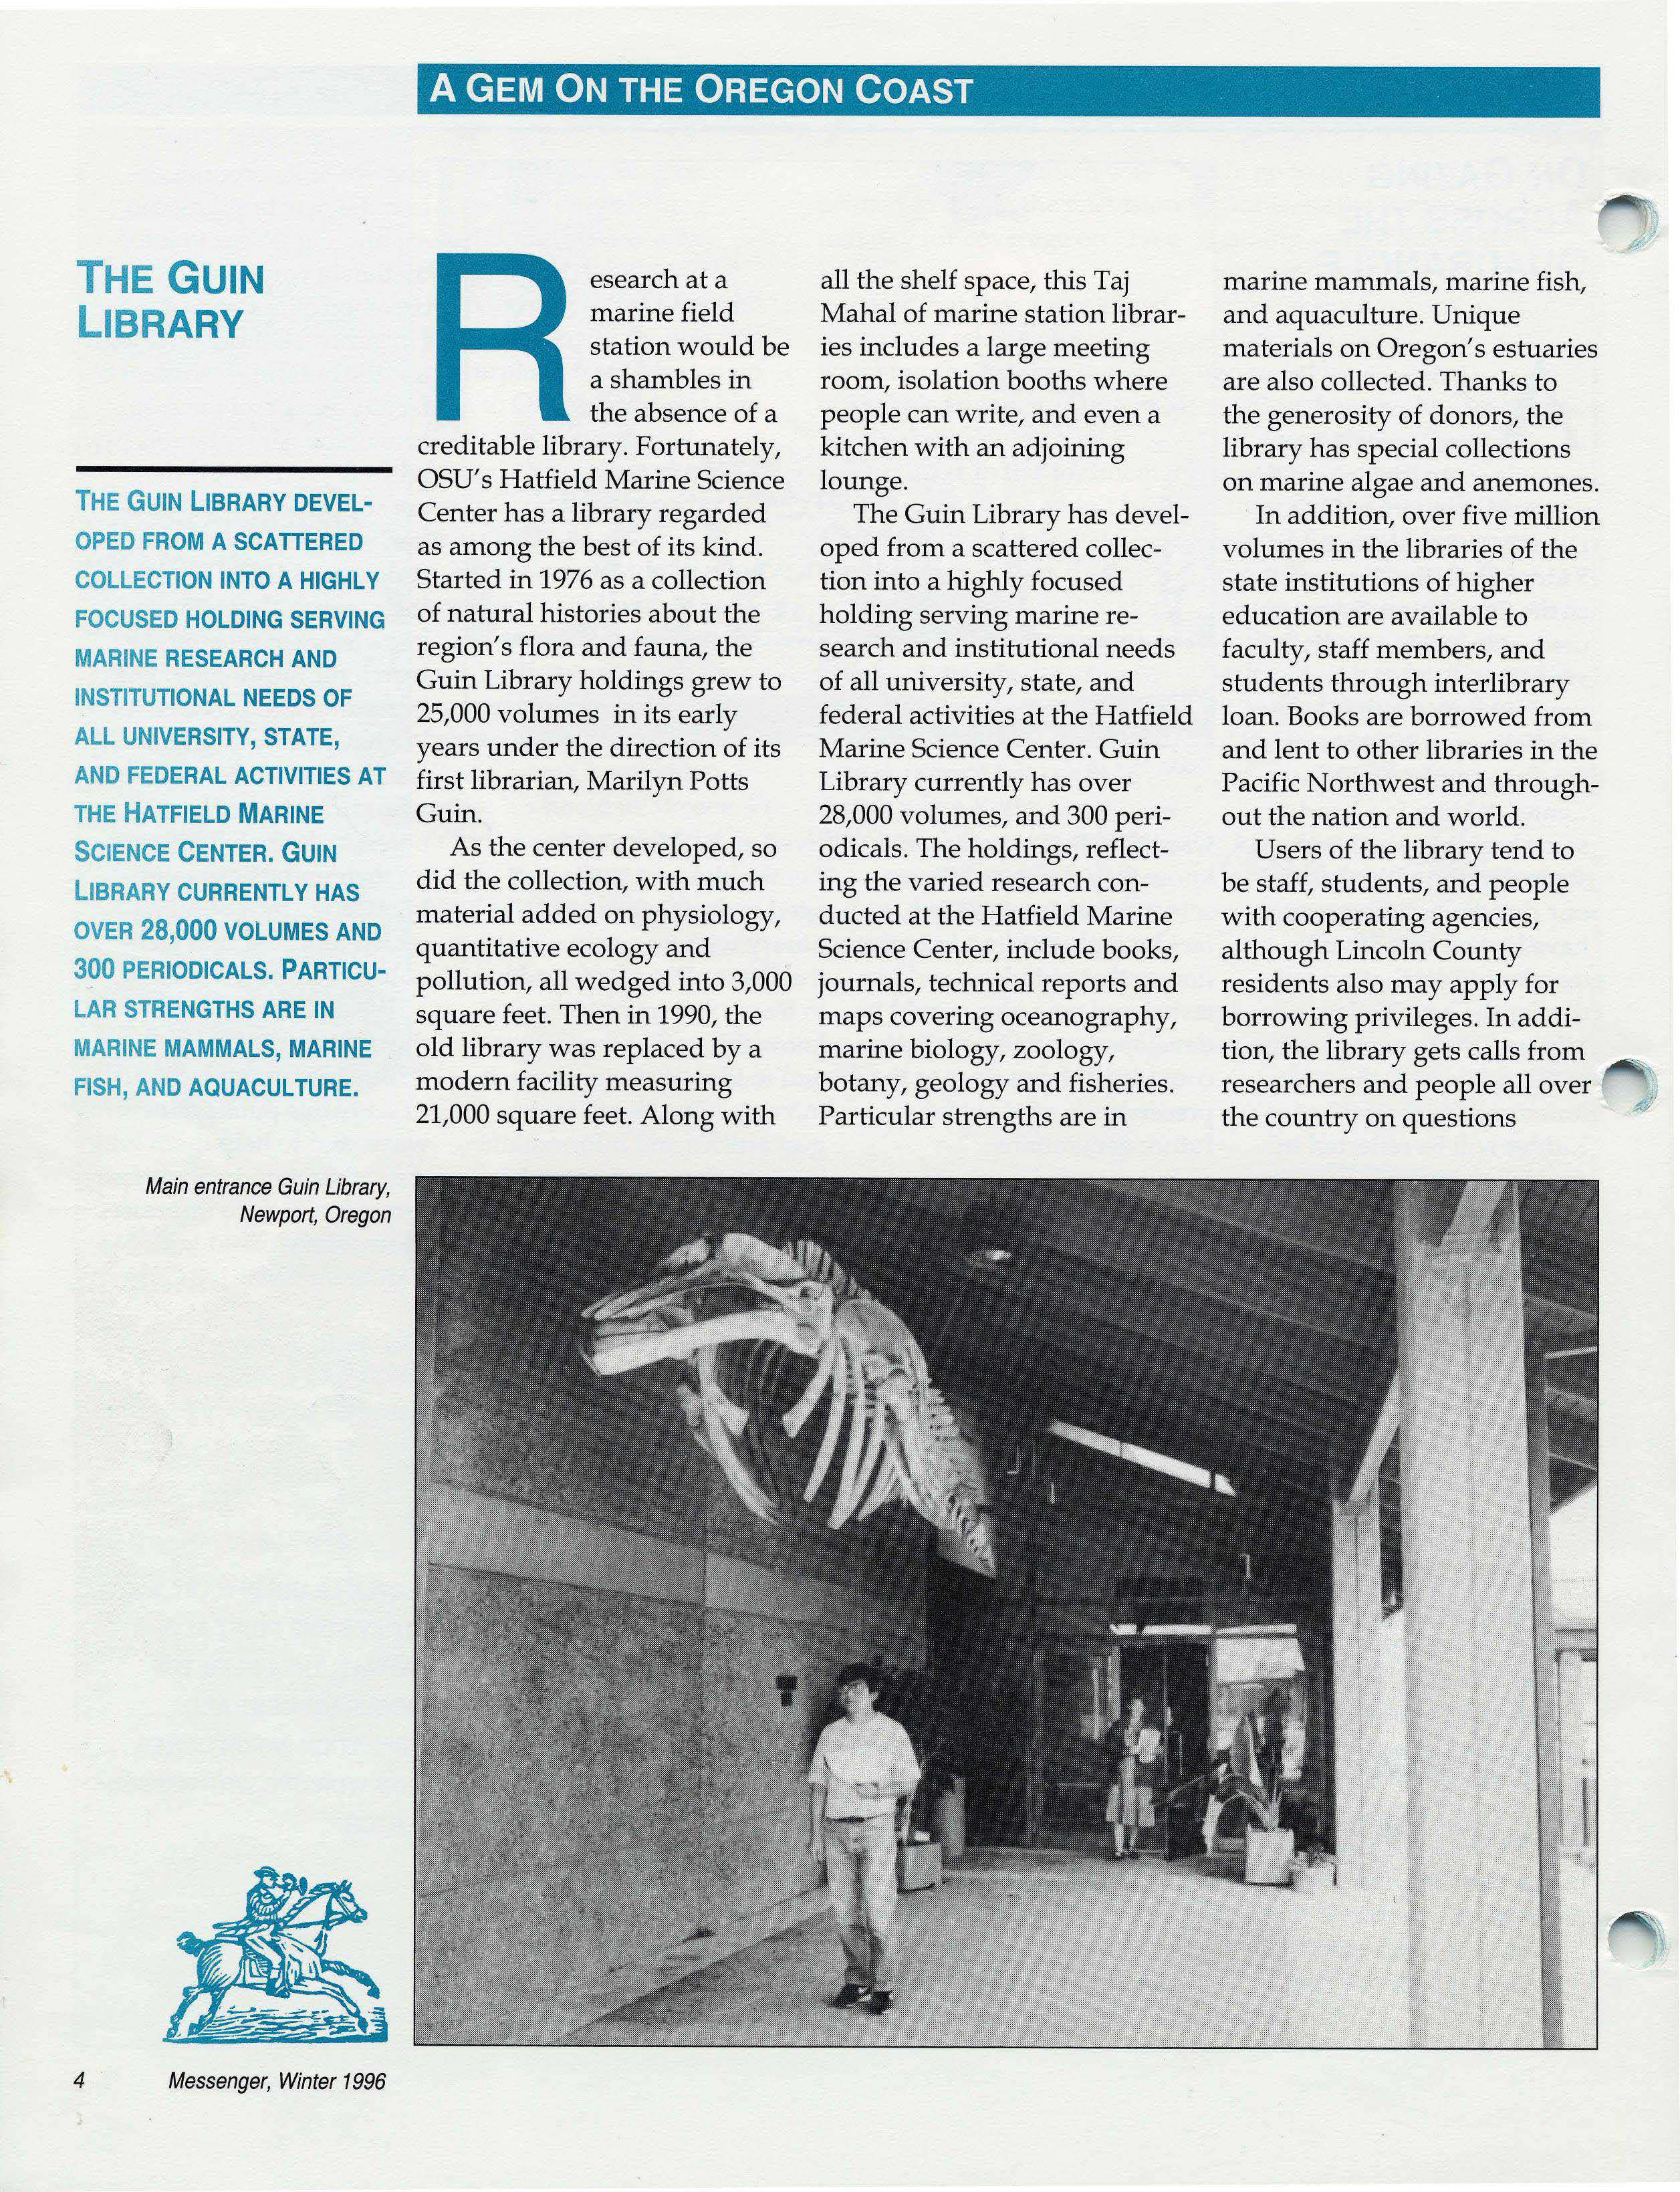 A Gem on the Oregon Coast: The Guin Library (The Messenger, Winter 1996; Vol. 11, No. 1)